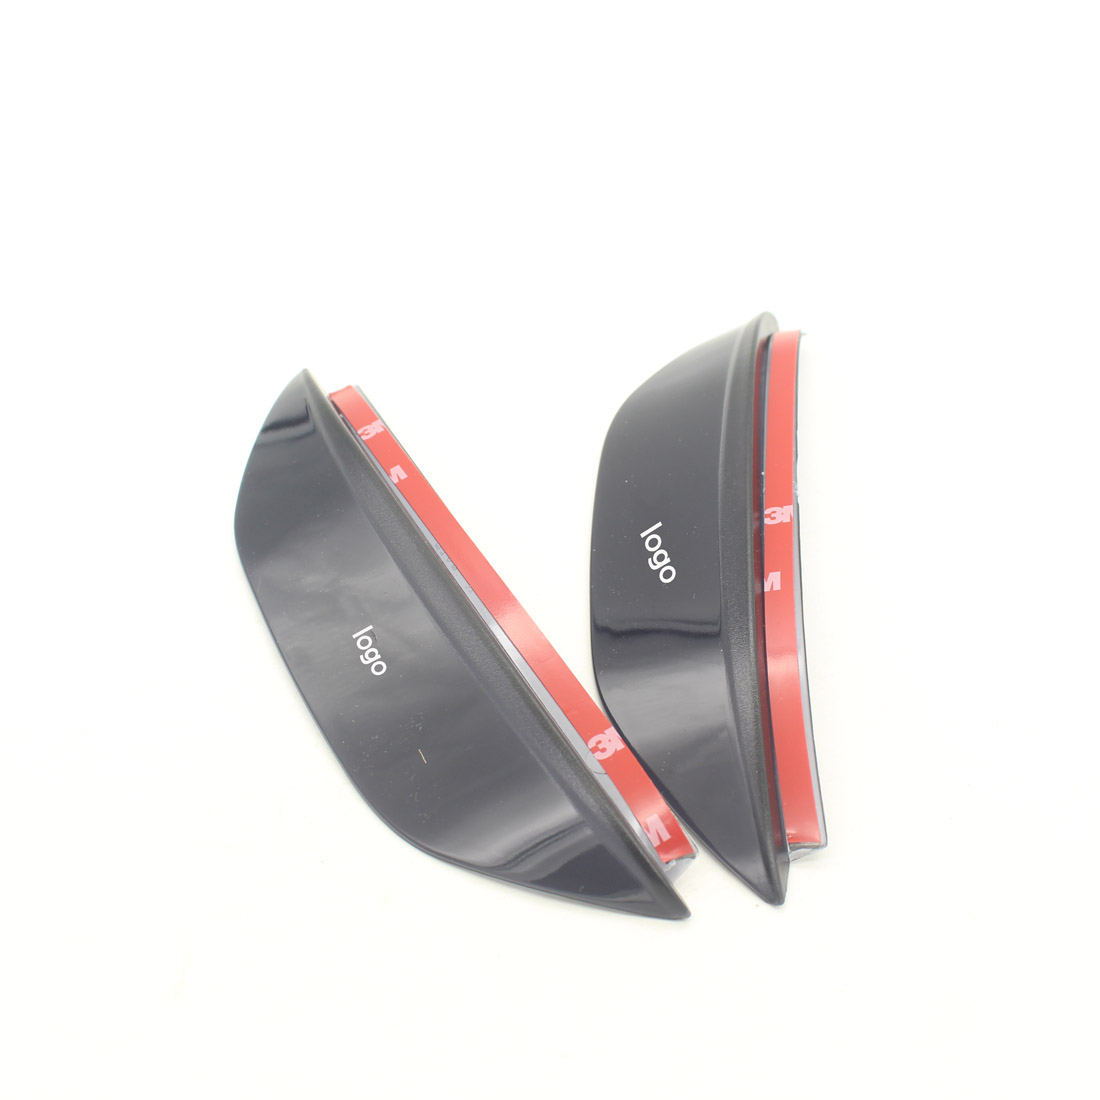 Dongzhen For SKODA Octavia Superb Car Rearview Mirror Rain Eyebrow Reflective Mirror Side Mirror Rain Visor Car Styling